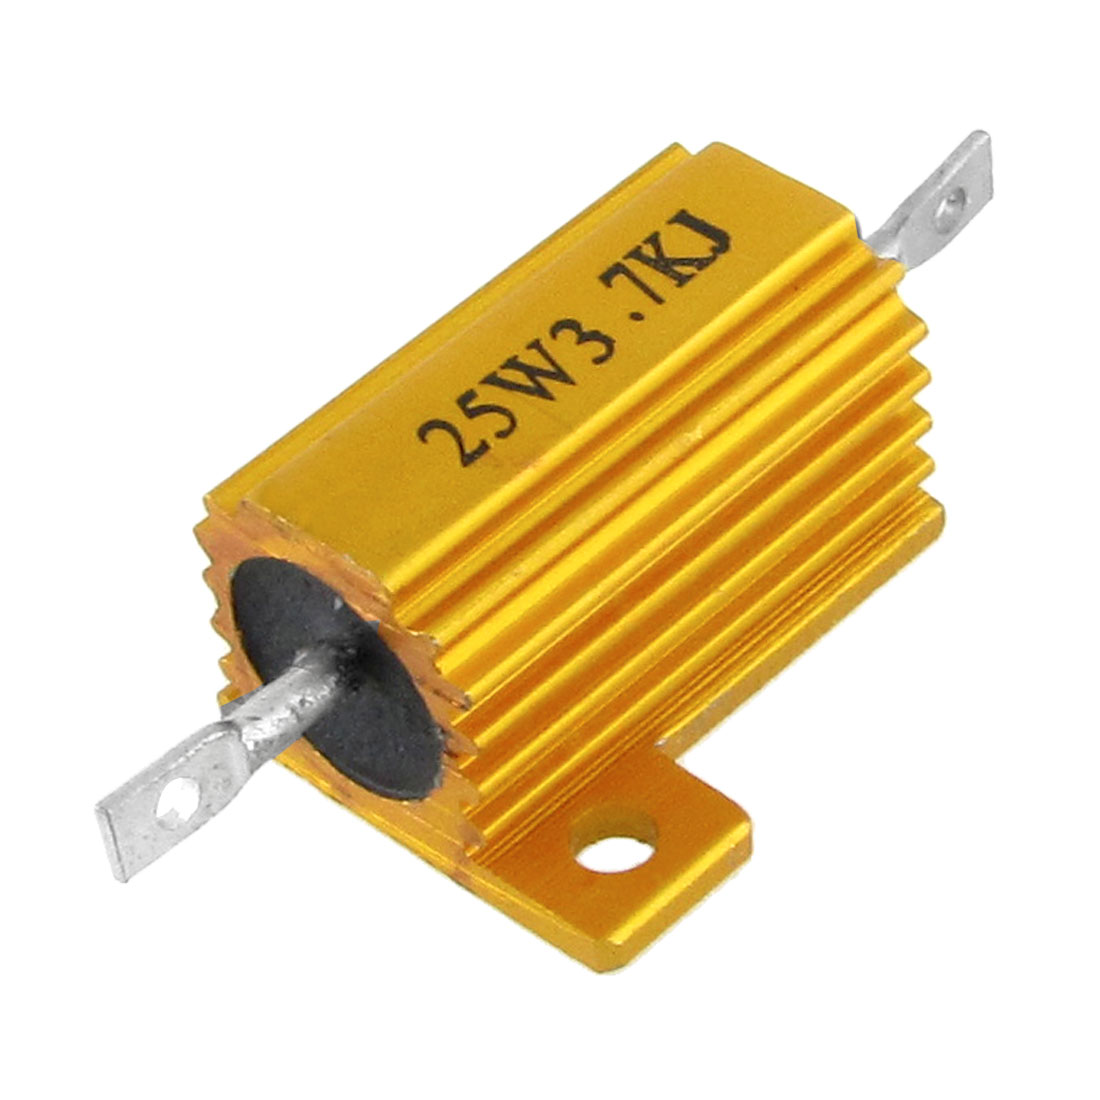 25W 3.7K Ohm Aluminum Housed Wirewound Power Resistor Gold Tone